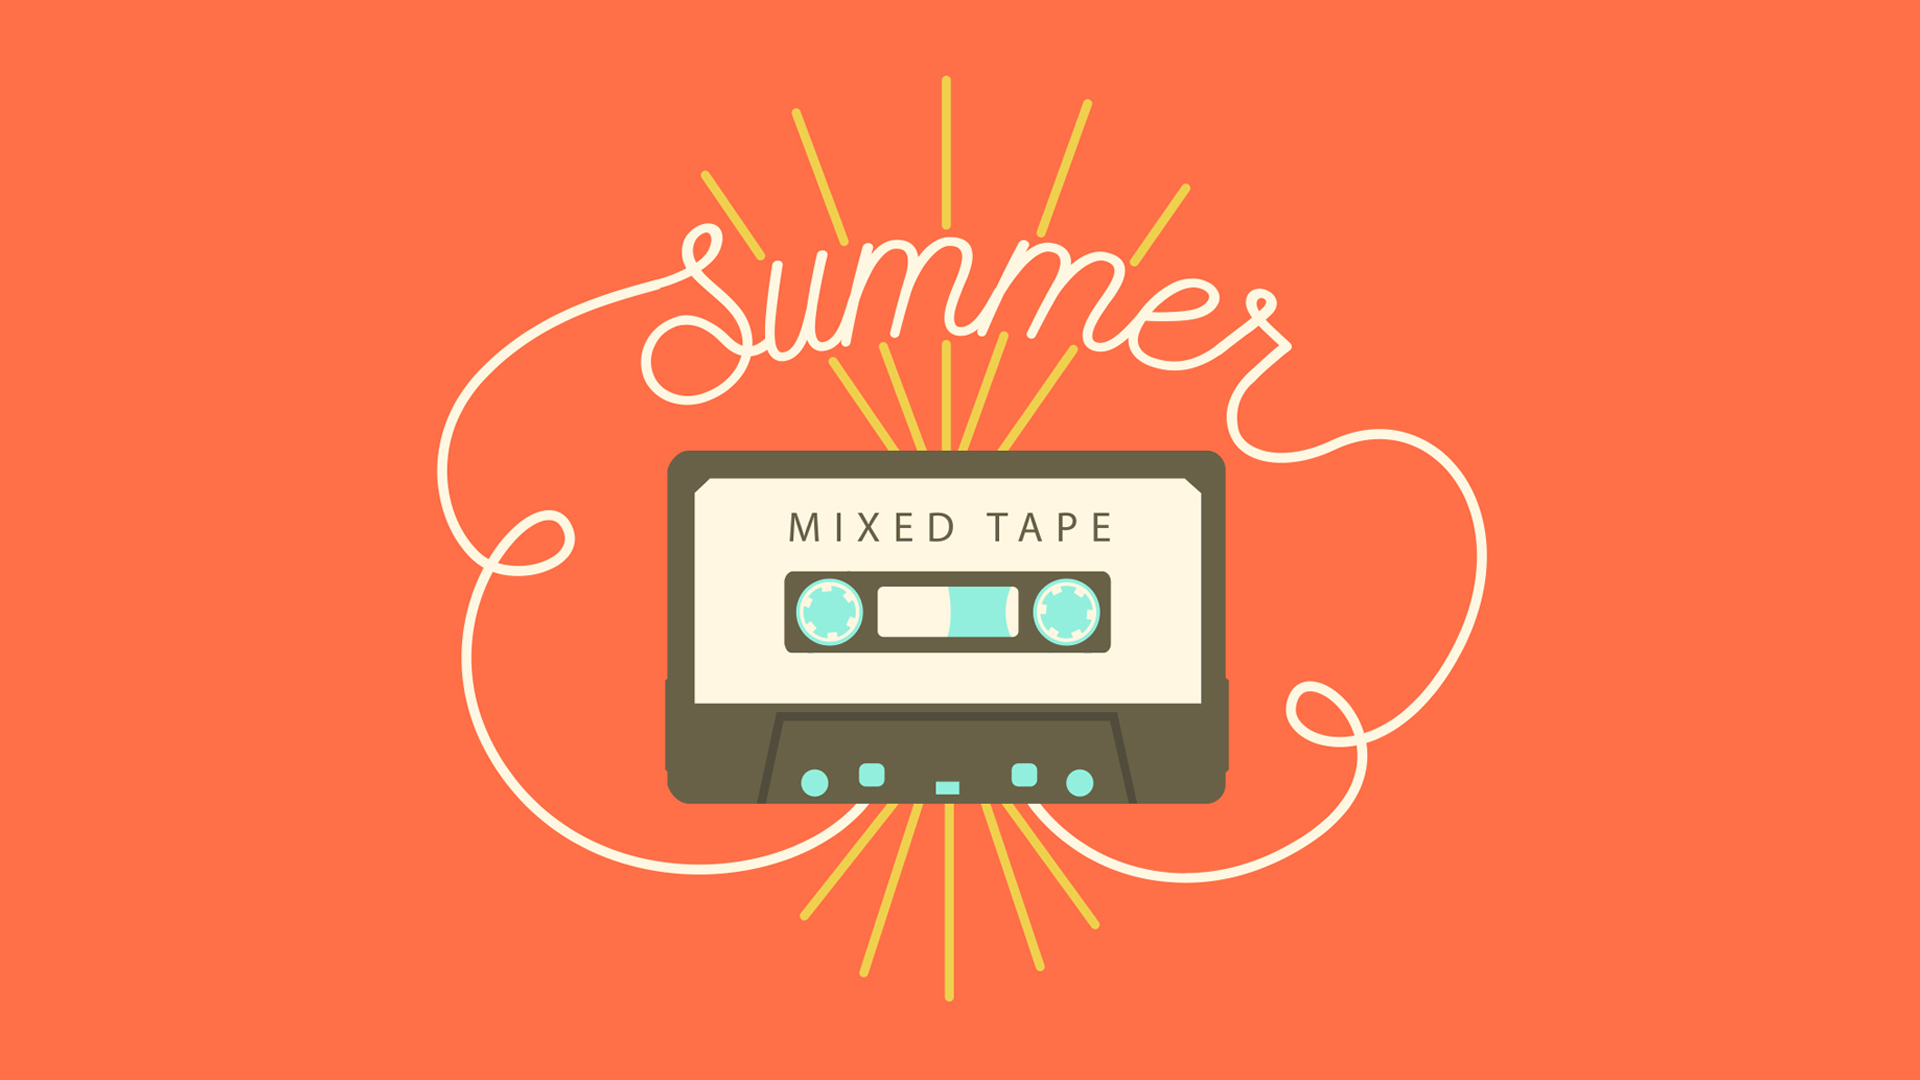 SUMMER MIXED TAPE